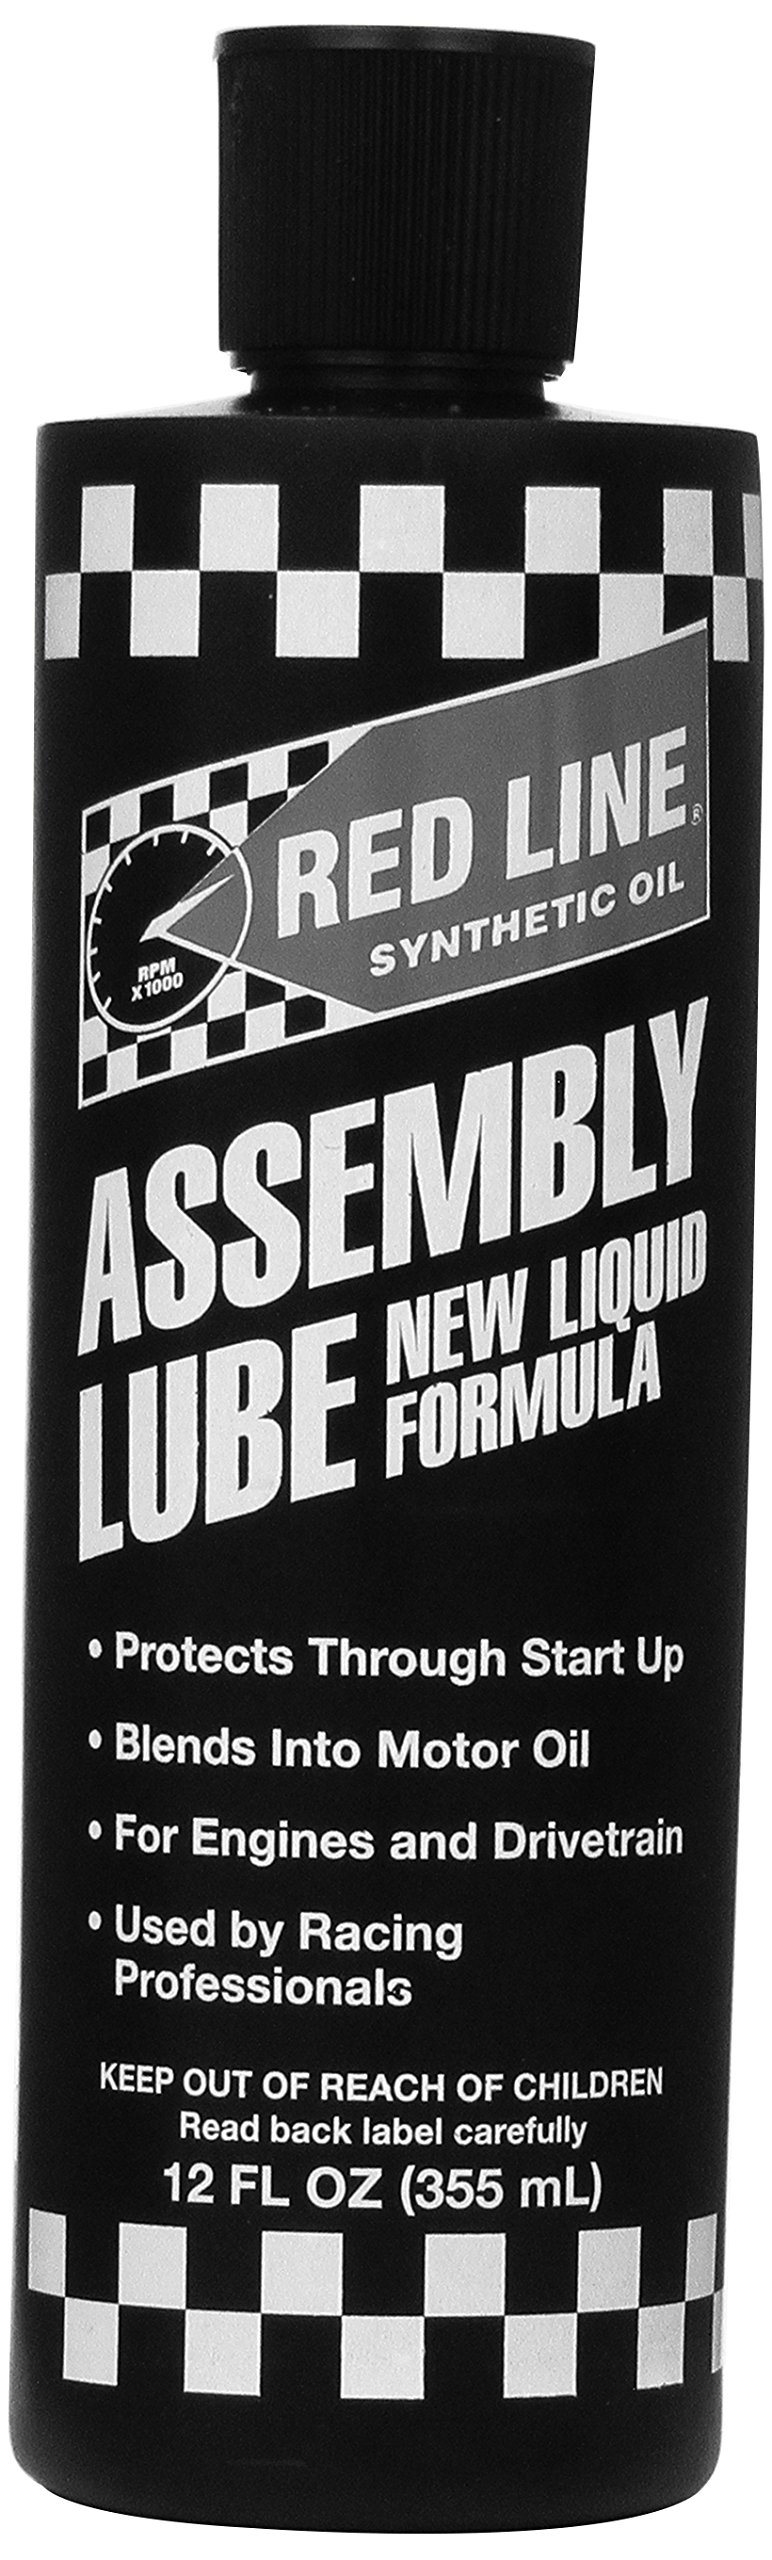 Red Line 80329 Liquid Assembly Lube - 12 oz, (Case of 6) by Red Line Oil